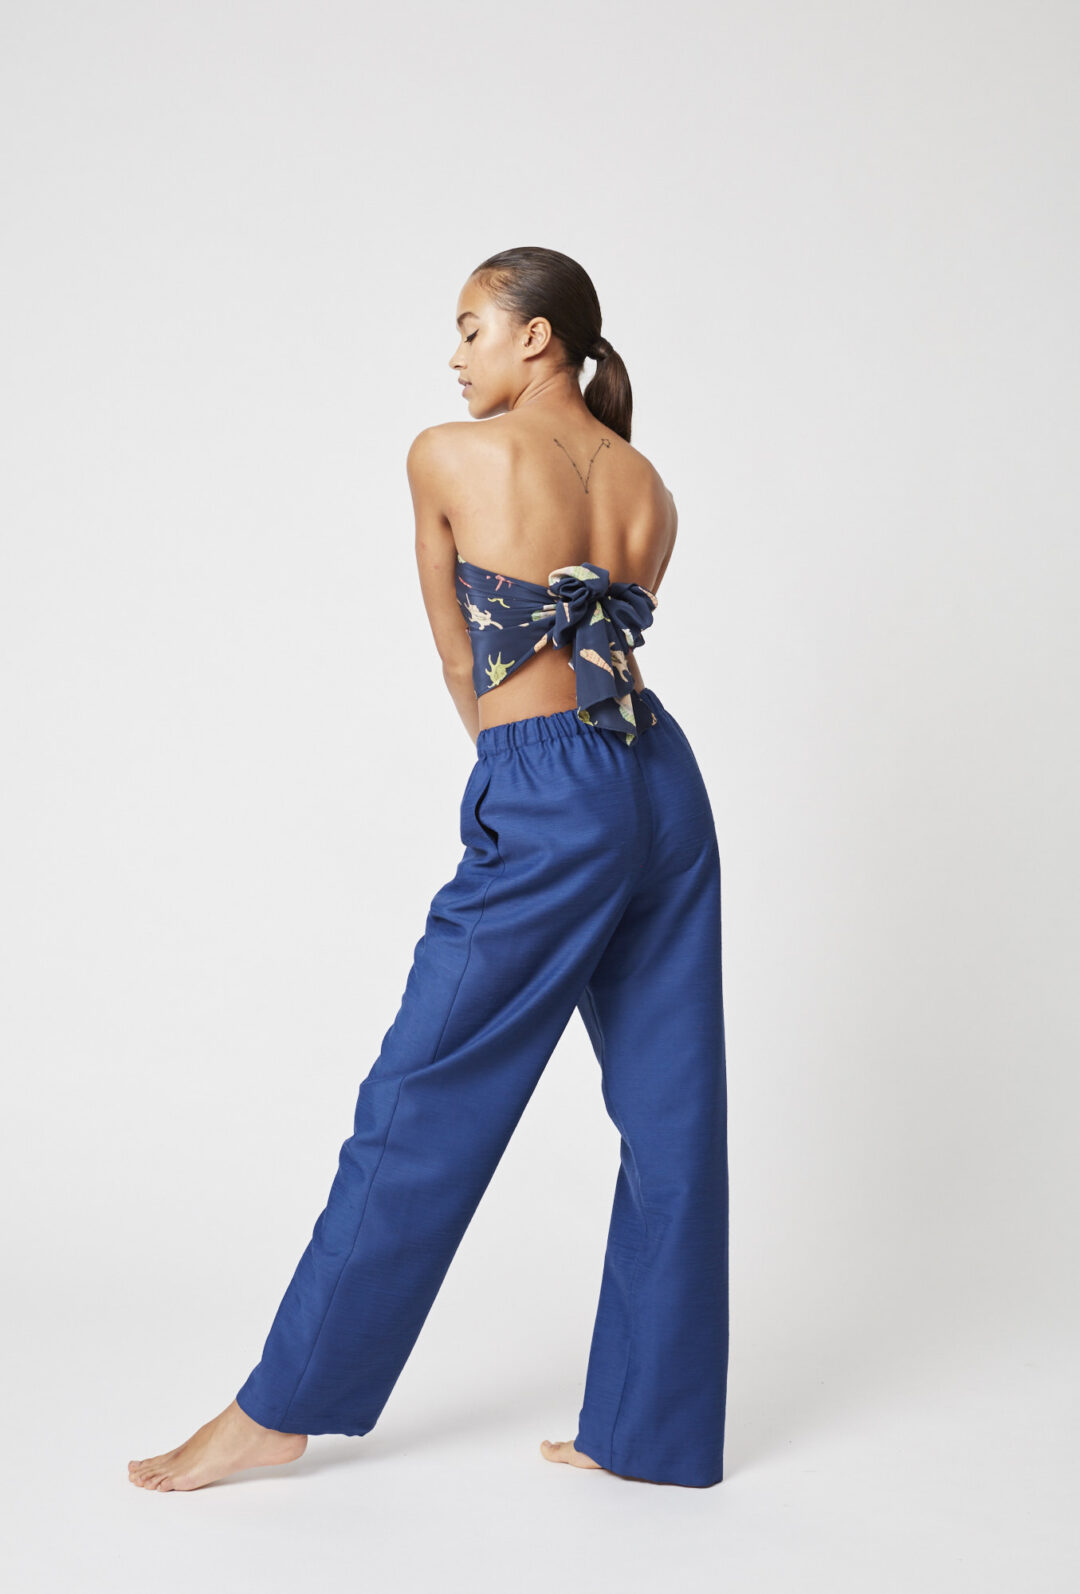 Collect23 Remade Cornflower pants